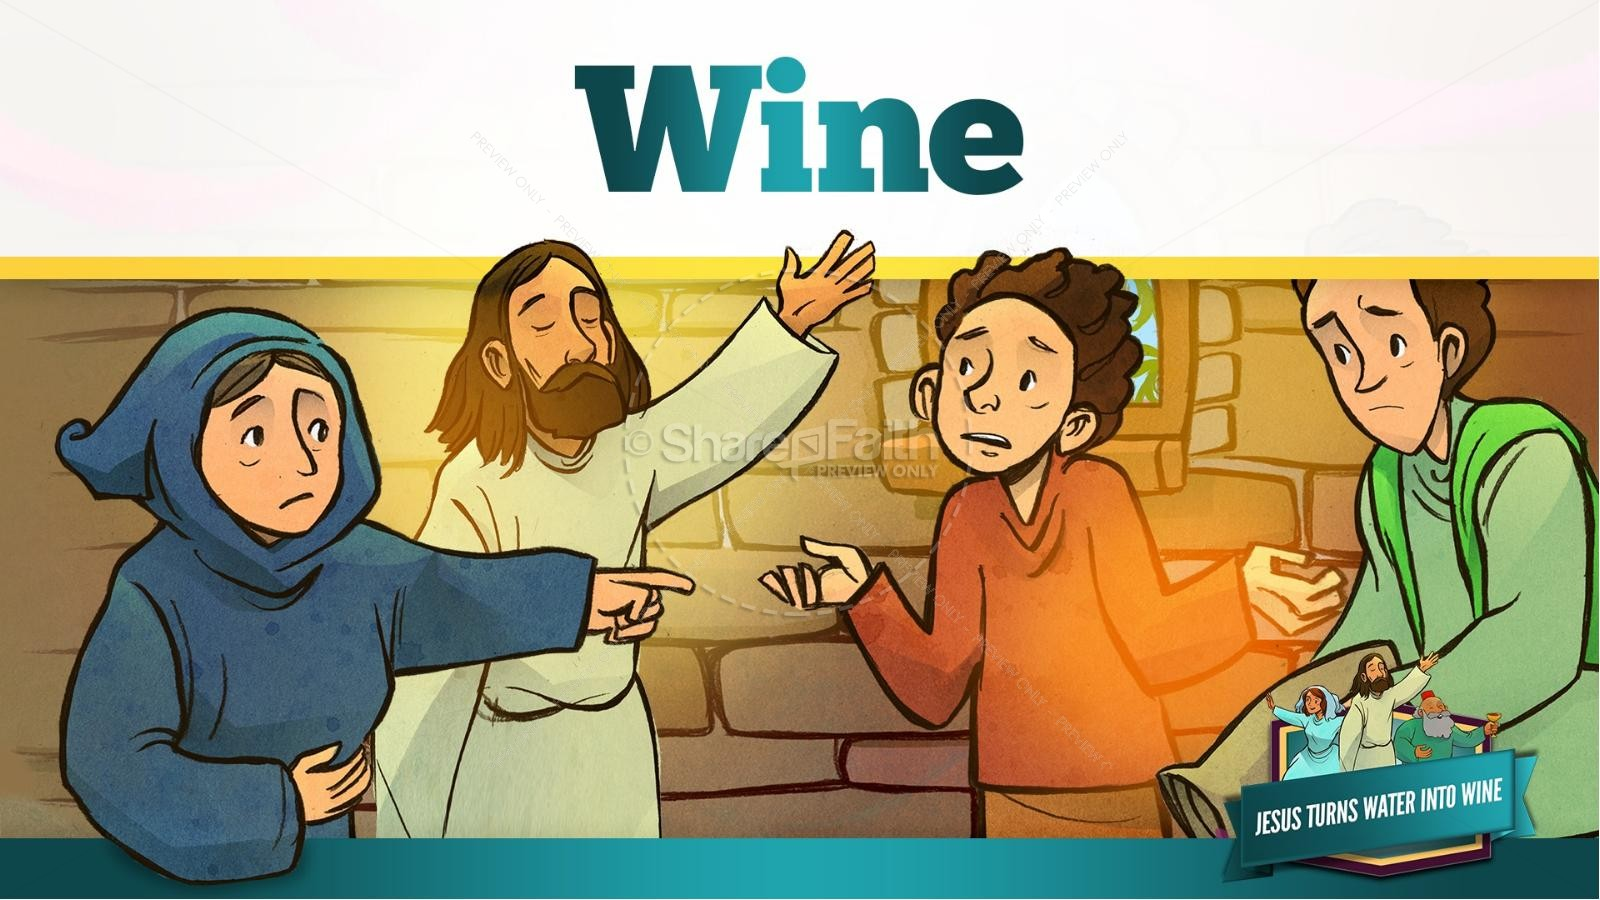 jesus turns water into wine kids bible story kids bible stories